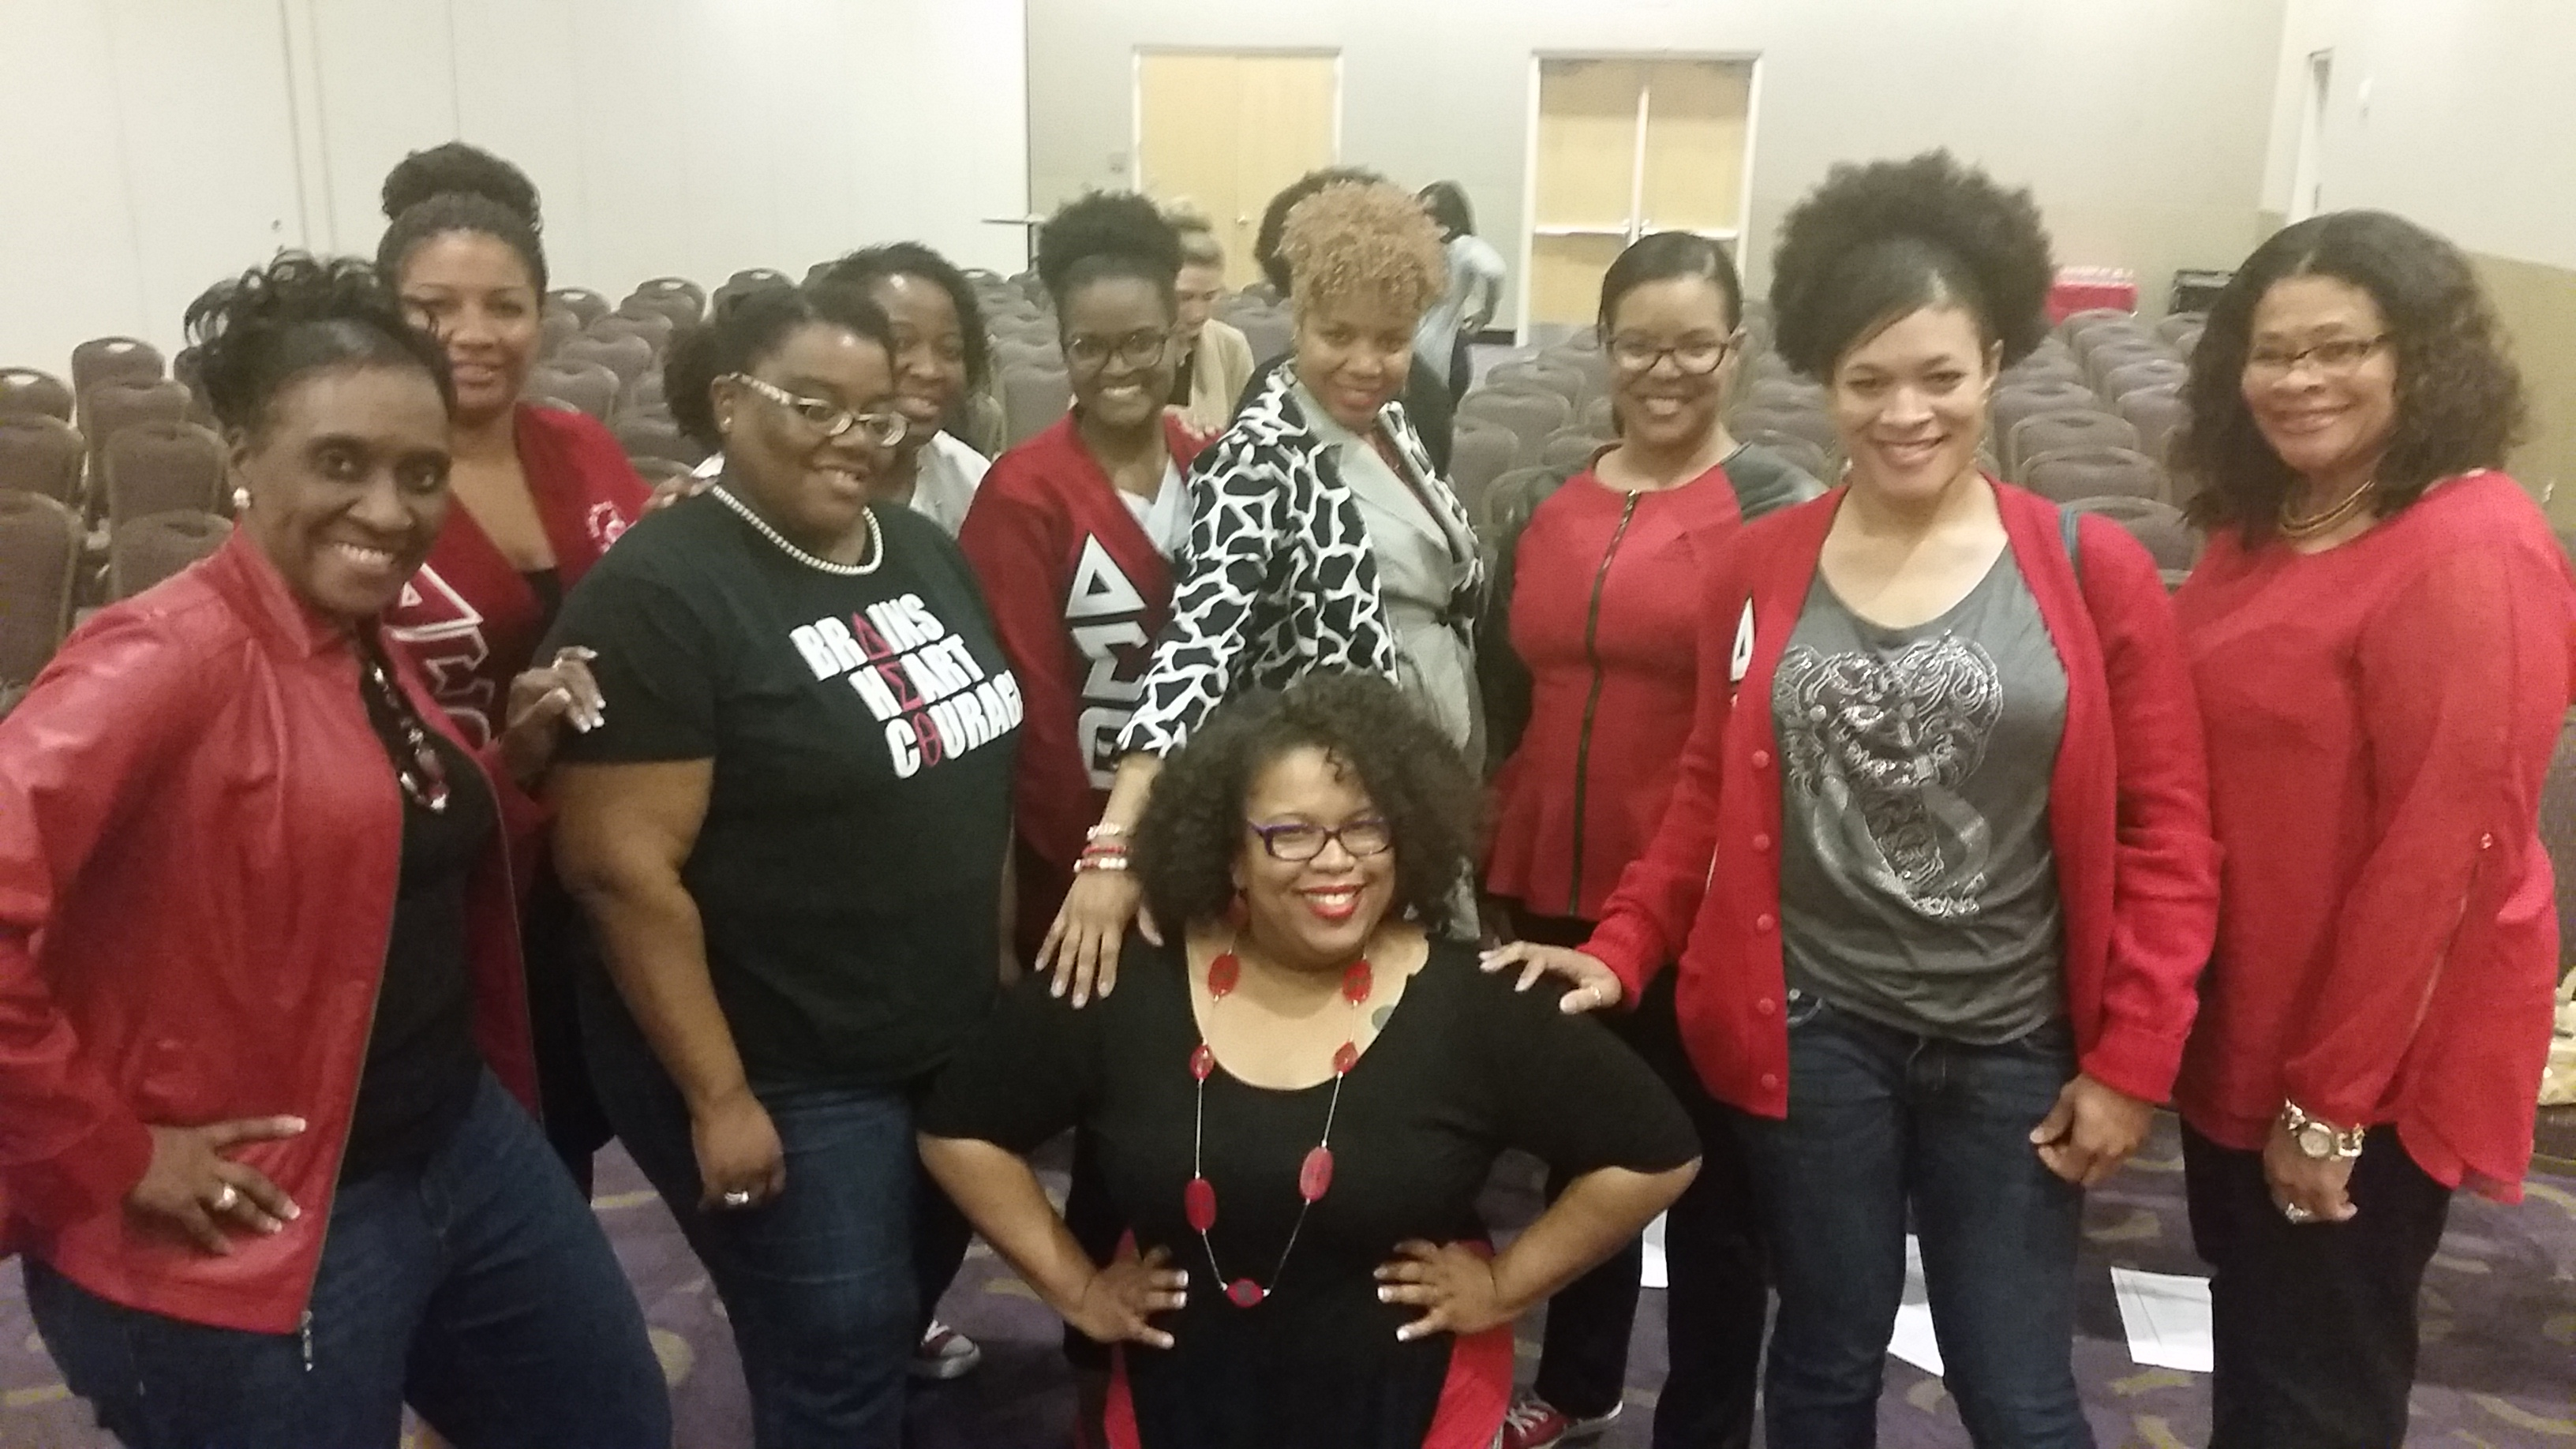 Goody Howard smiling with members of Delta Sigma Theta Sorority, Inc